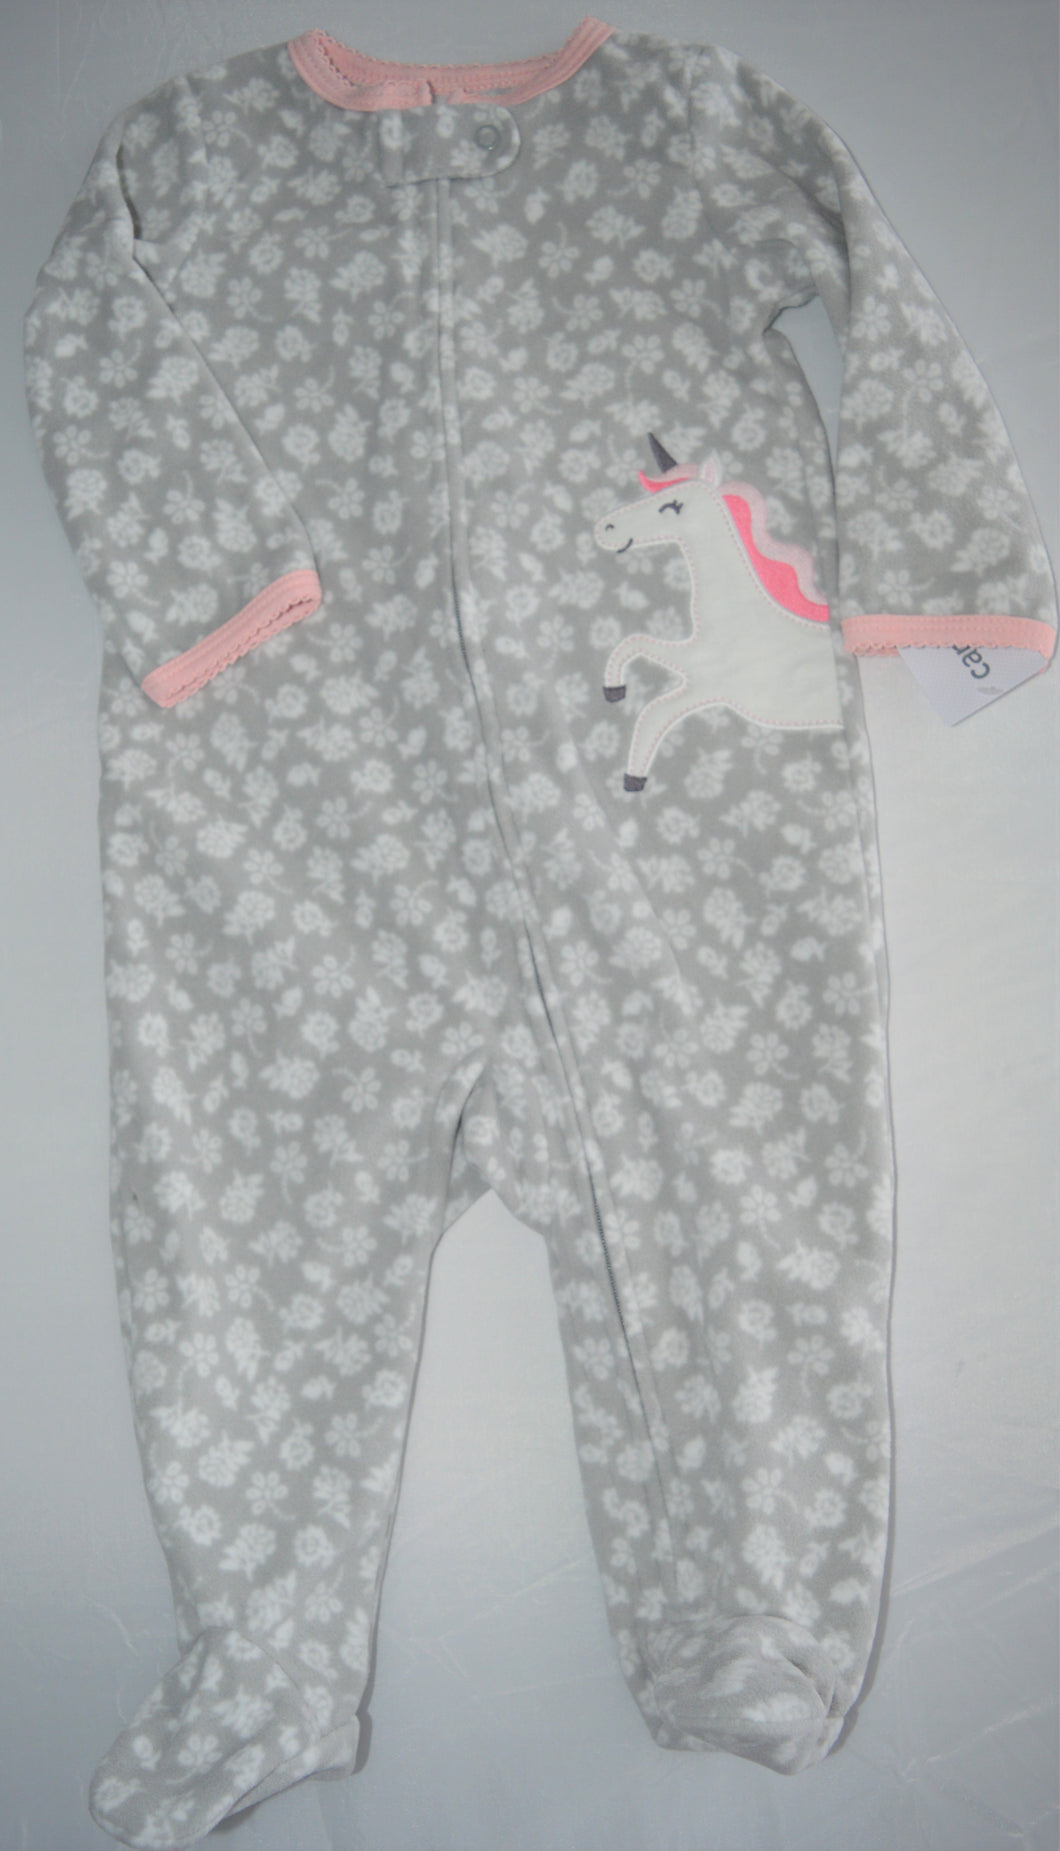 NWT Carter's Grey with White Flowers and Unicorn Fleece Sleeper